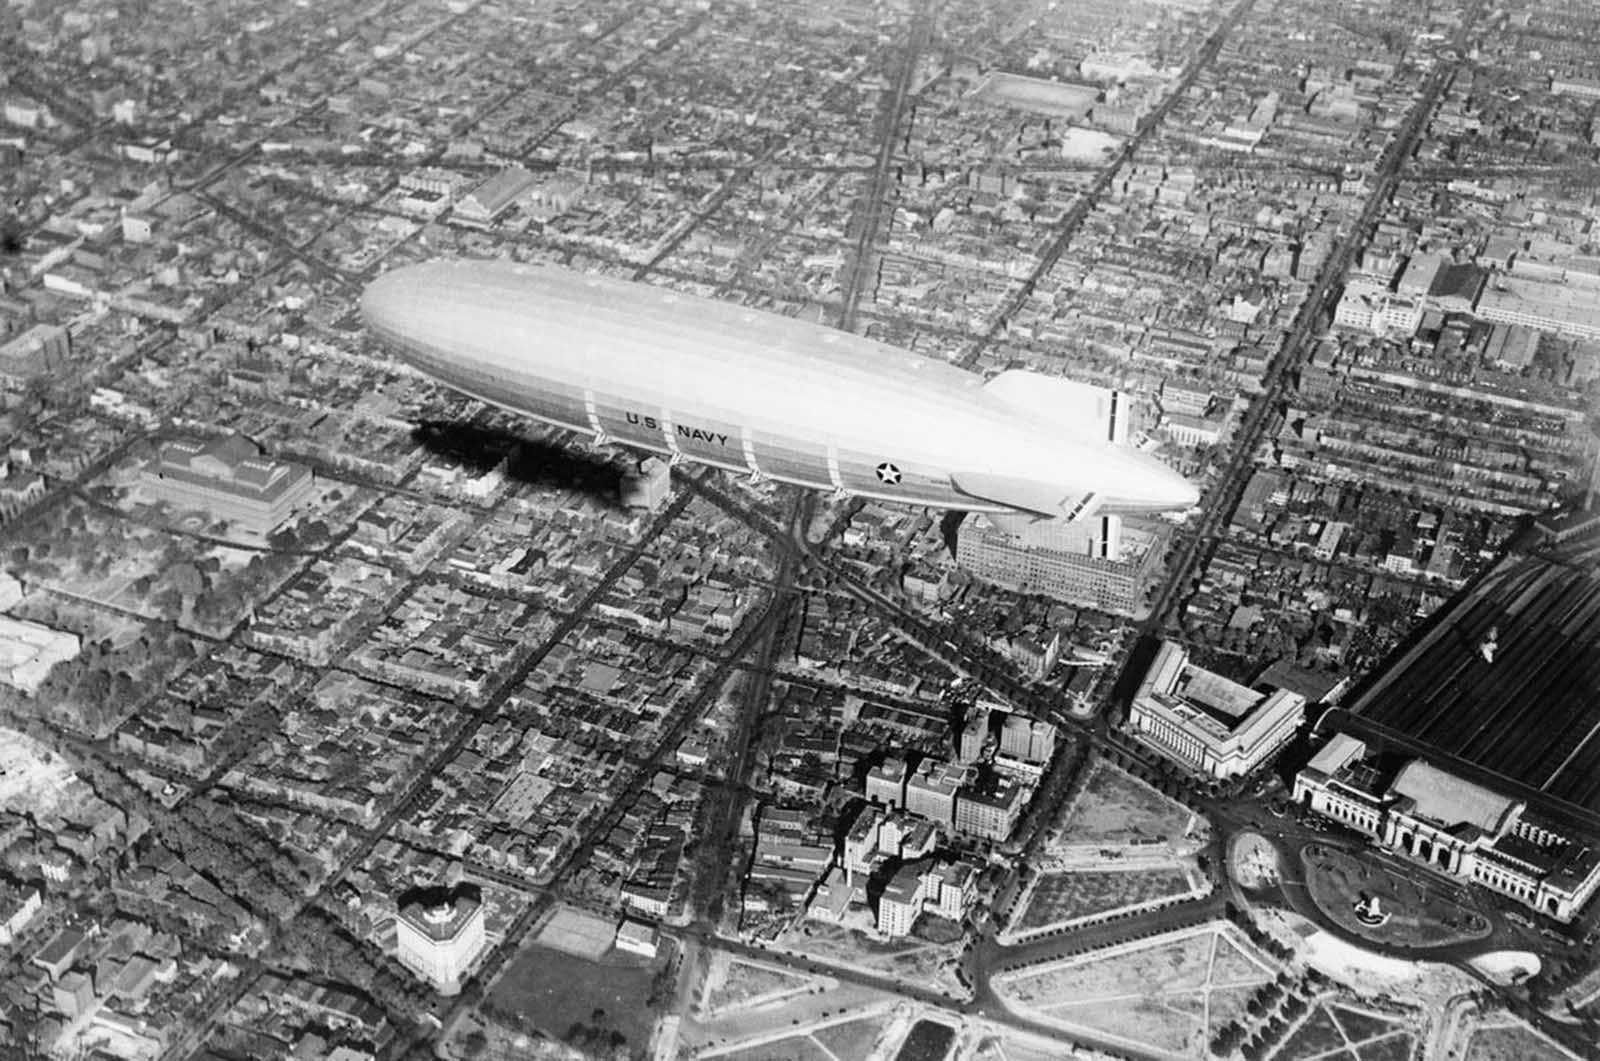 Aerial view of the USS Akron over Washington, District of Columbia, in 1931, with the long north diagonal of New Jersey Avenue bisected by the balloon and Massachusetts Avenue seen just beneath the ship.